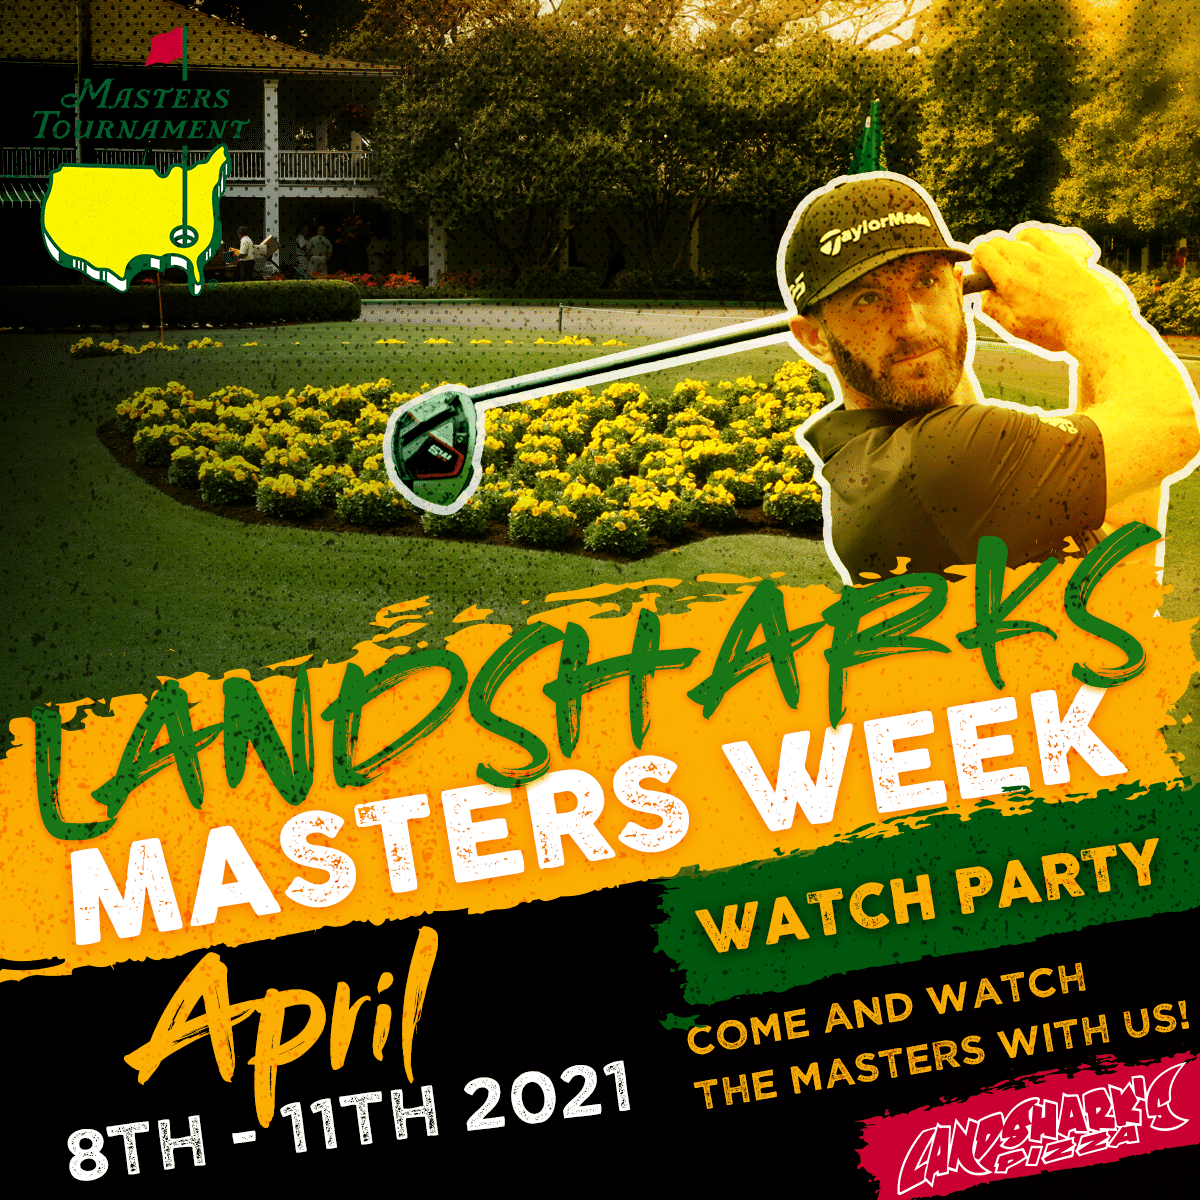 The Masters 2021 Landsharks Pizza